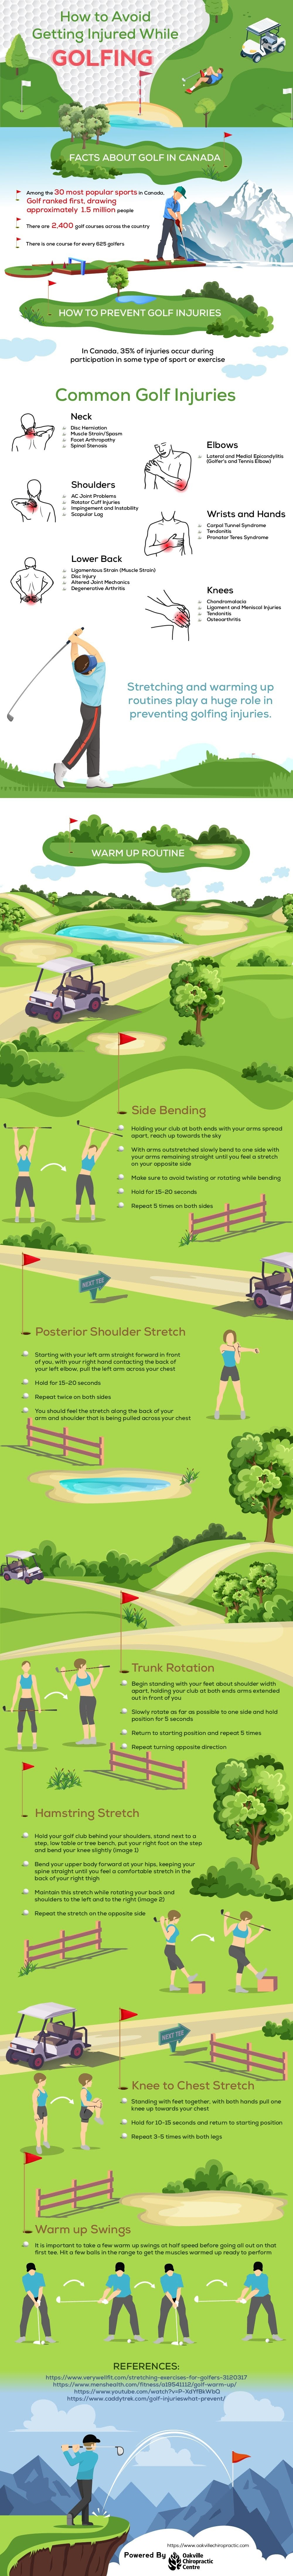 How To Avoid Getting Injured While Golfing #infographic